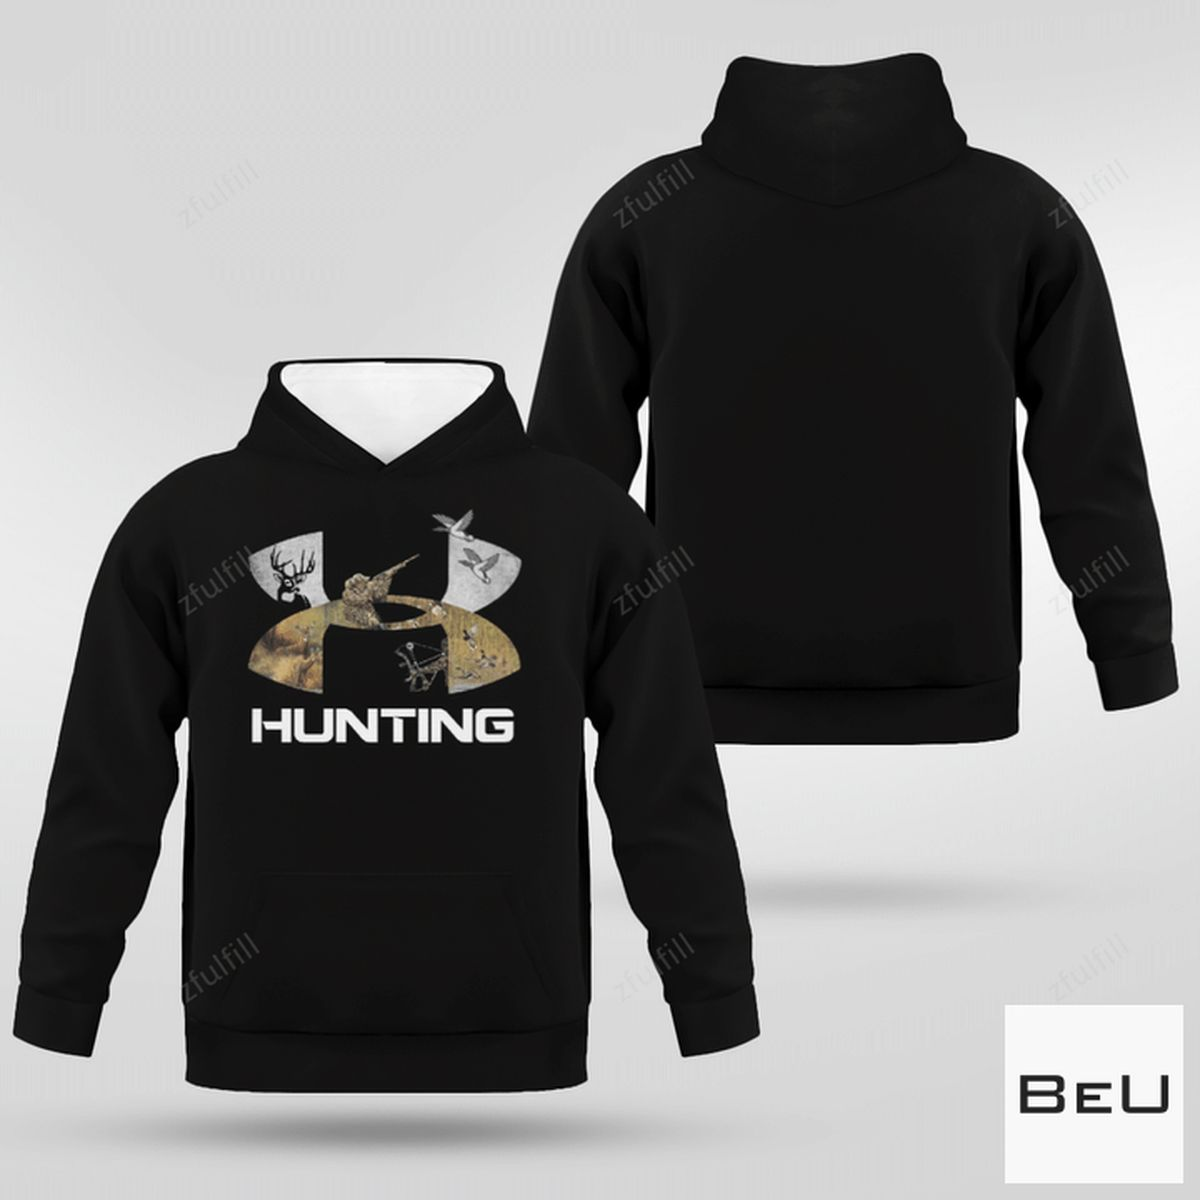 Luxury Under Armour Hunting shirt